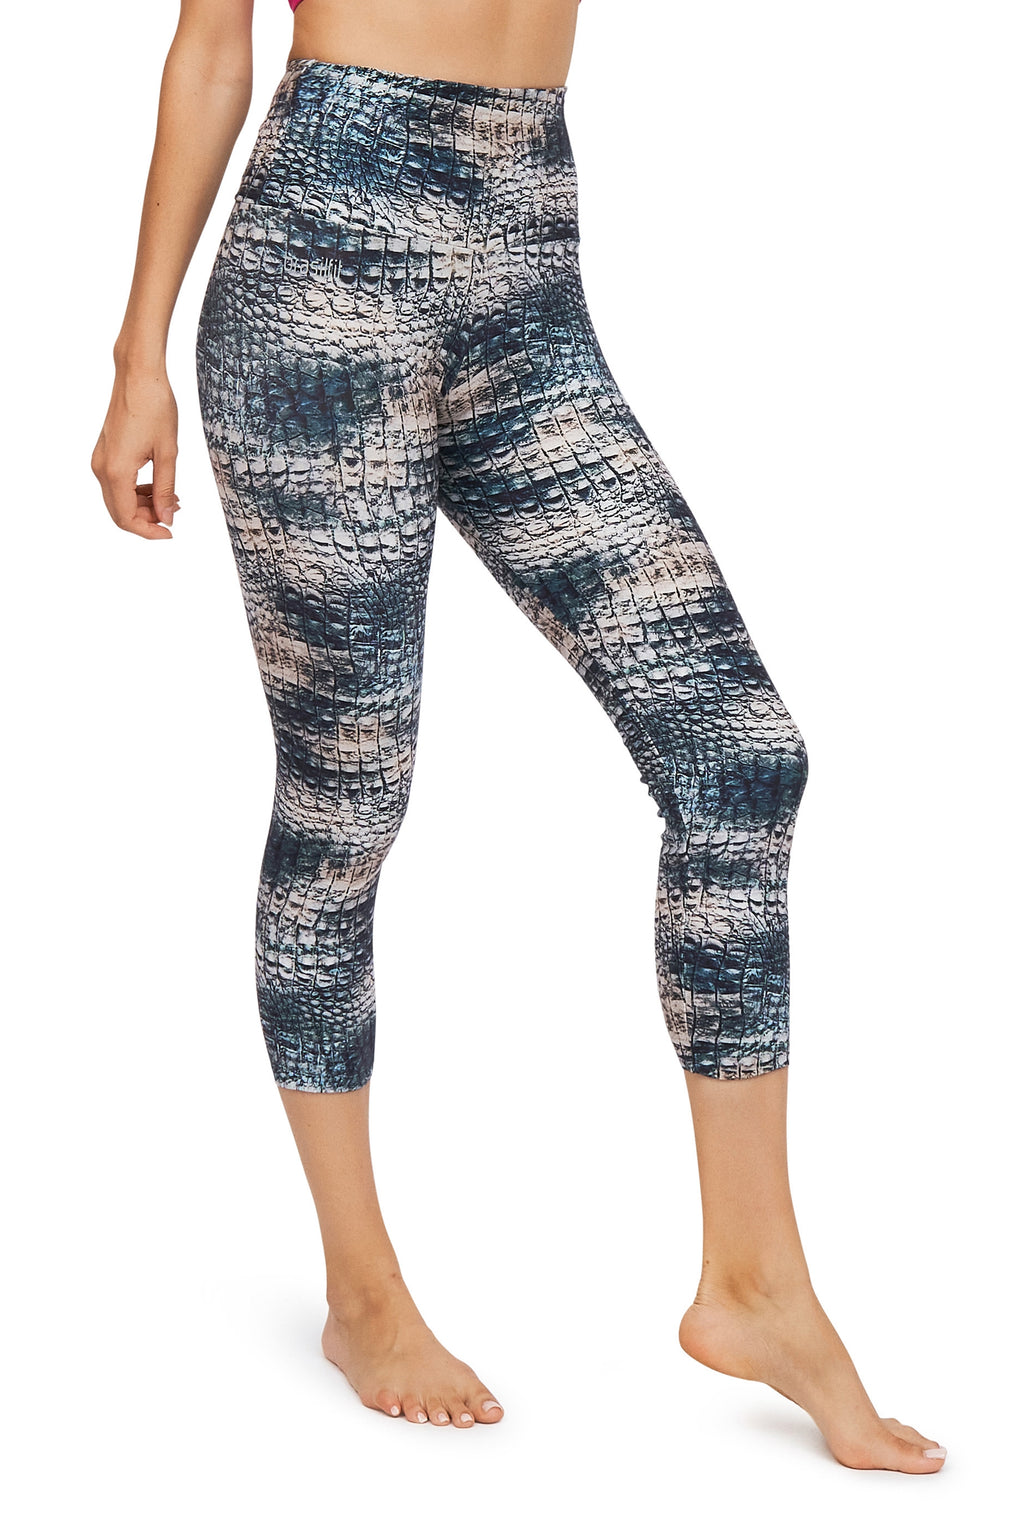 Berga High Waisted Mid Calf Legging